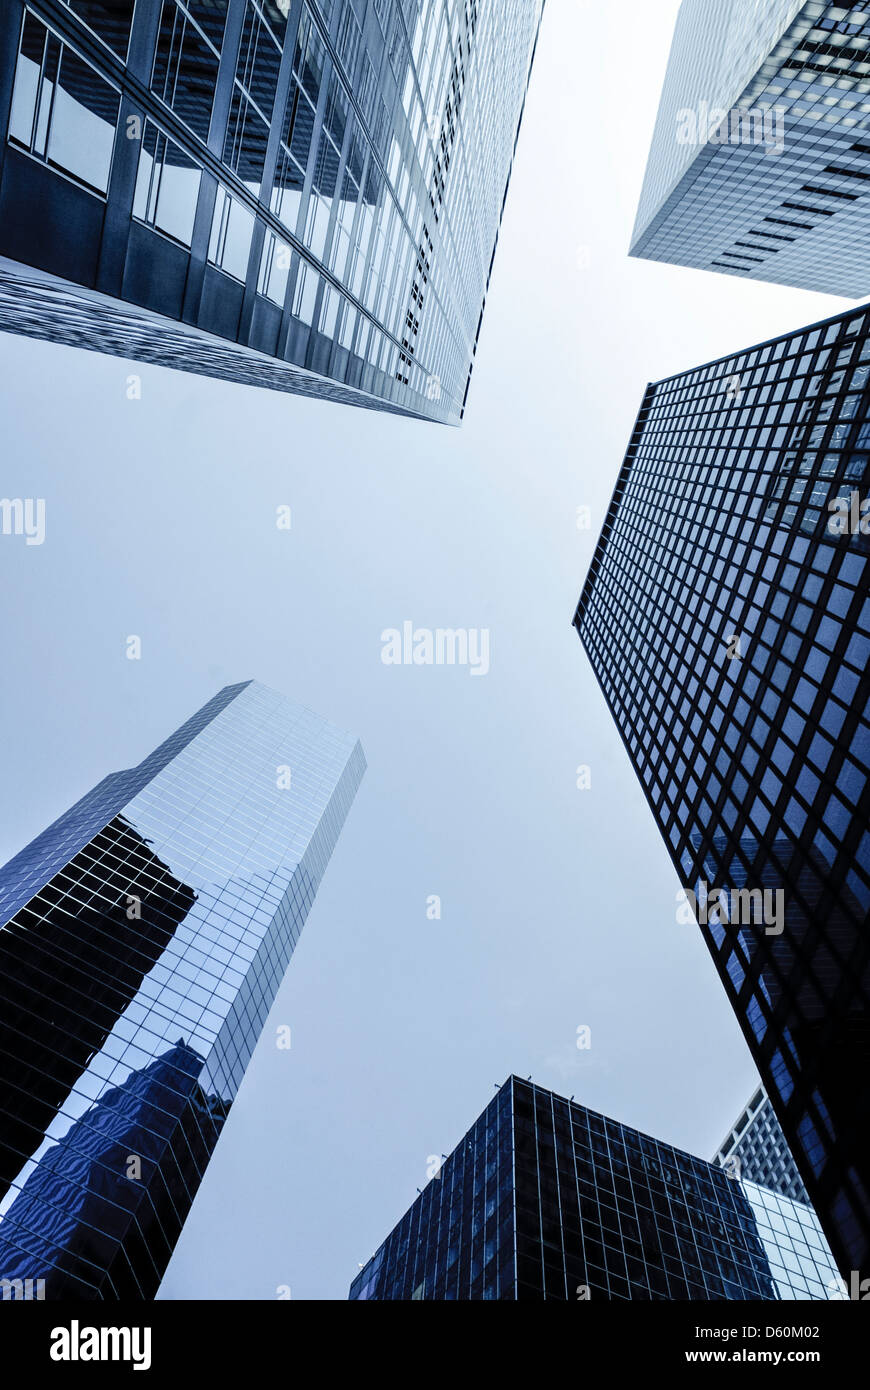 Manhattan Financial District, New York City, low angle shot of high rise buildings with The Broad Financial Center, - Stock Image